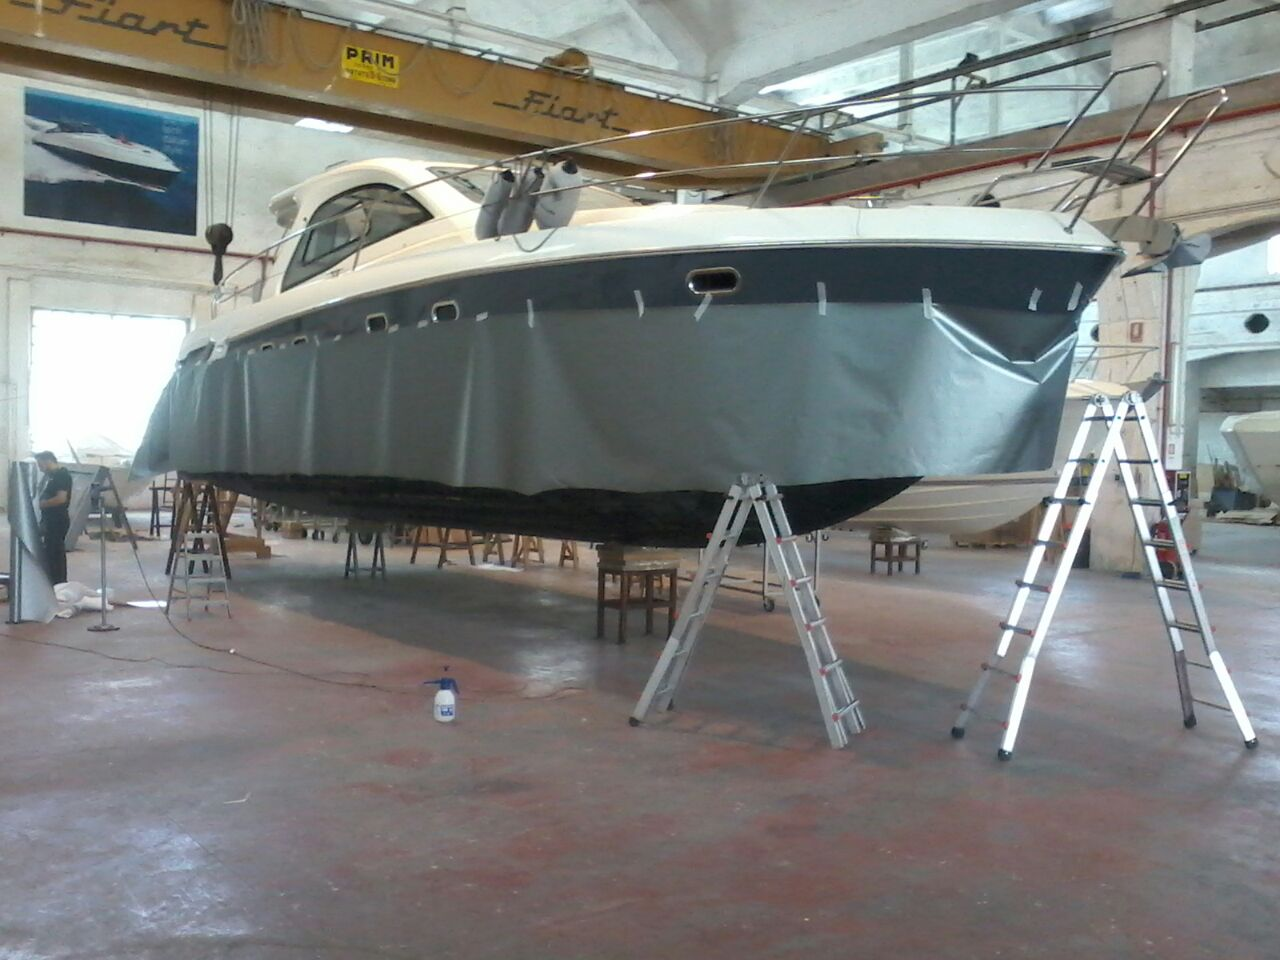 Fiart 45 boat wrapping vista 5